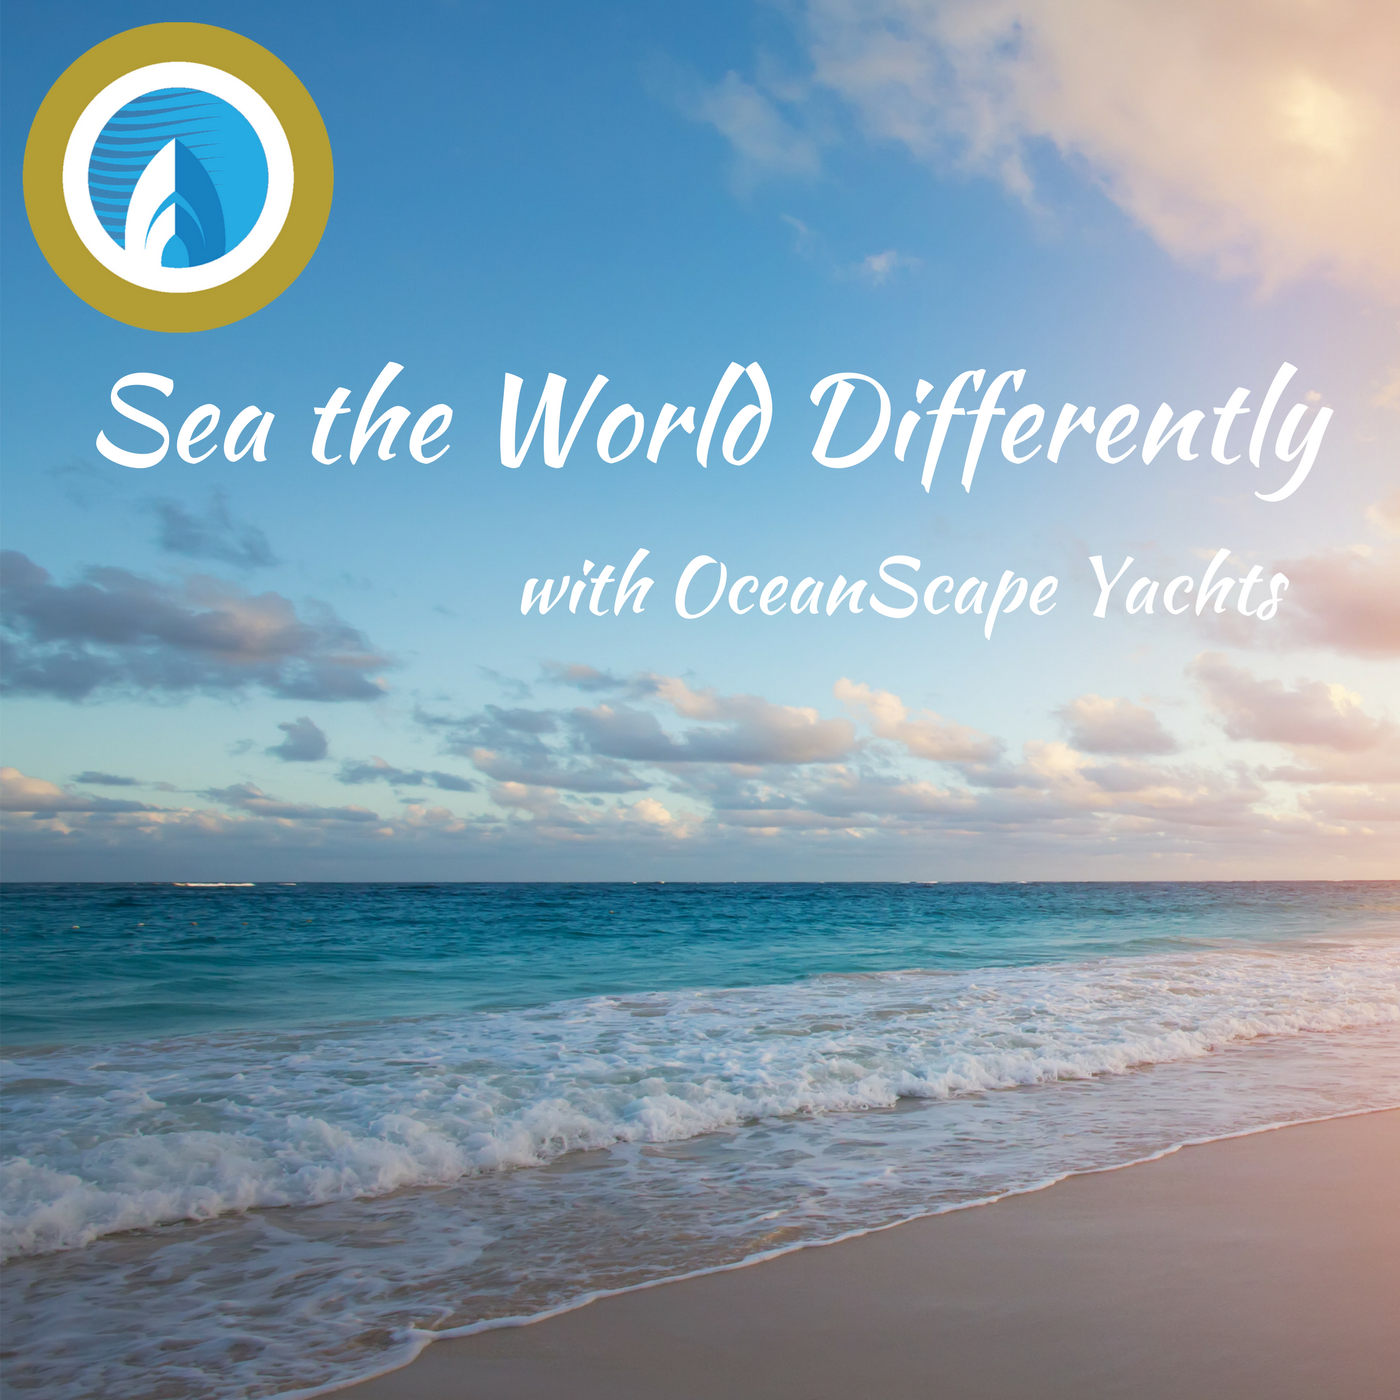 Sea The World Differently with OceanScape Yachts